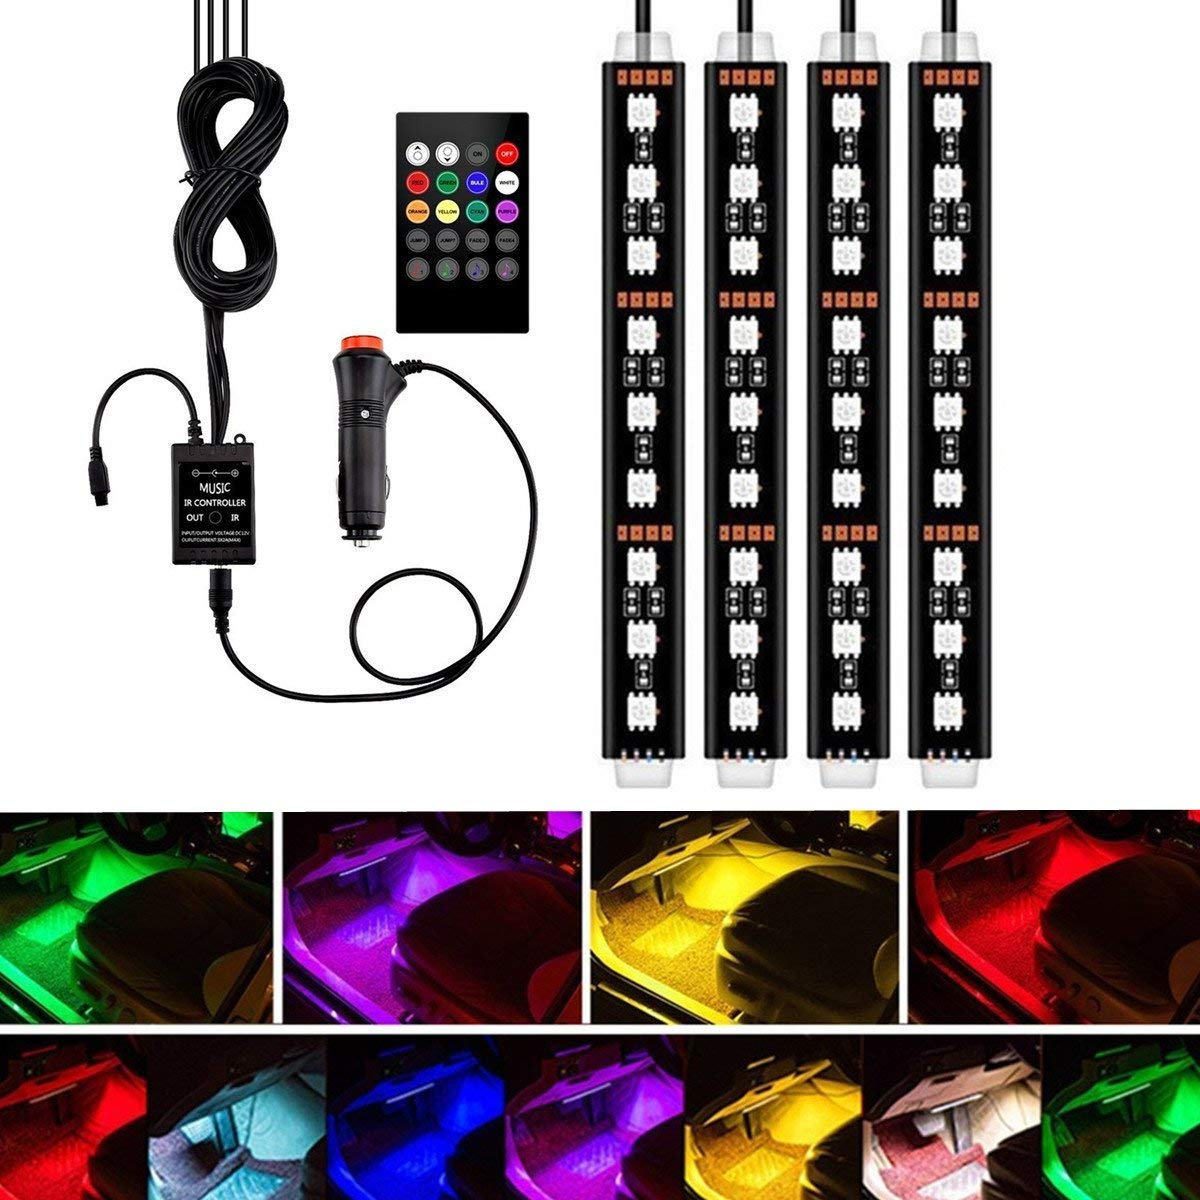 4pcs 48 LED Multicolor Music Car Interior Light LED Under Dash Lighting Kit with Sound Active Function and Wireless Remote Control Car Charger Included,DC 12V JIWINNER Car LED Strip Light